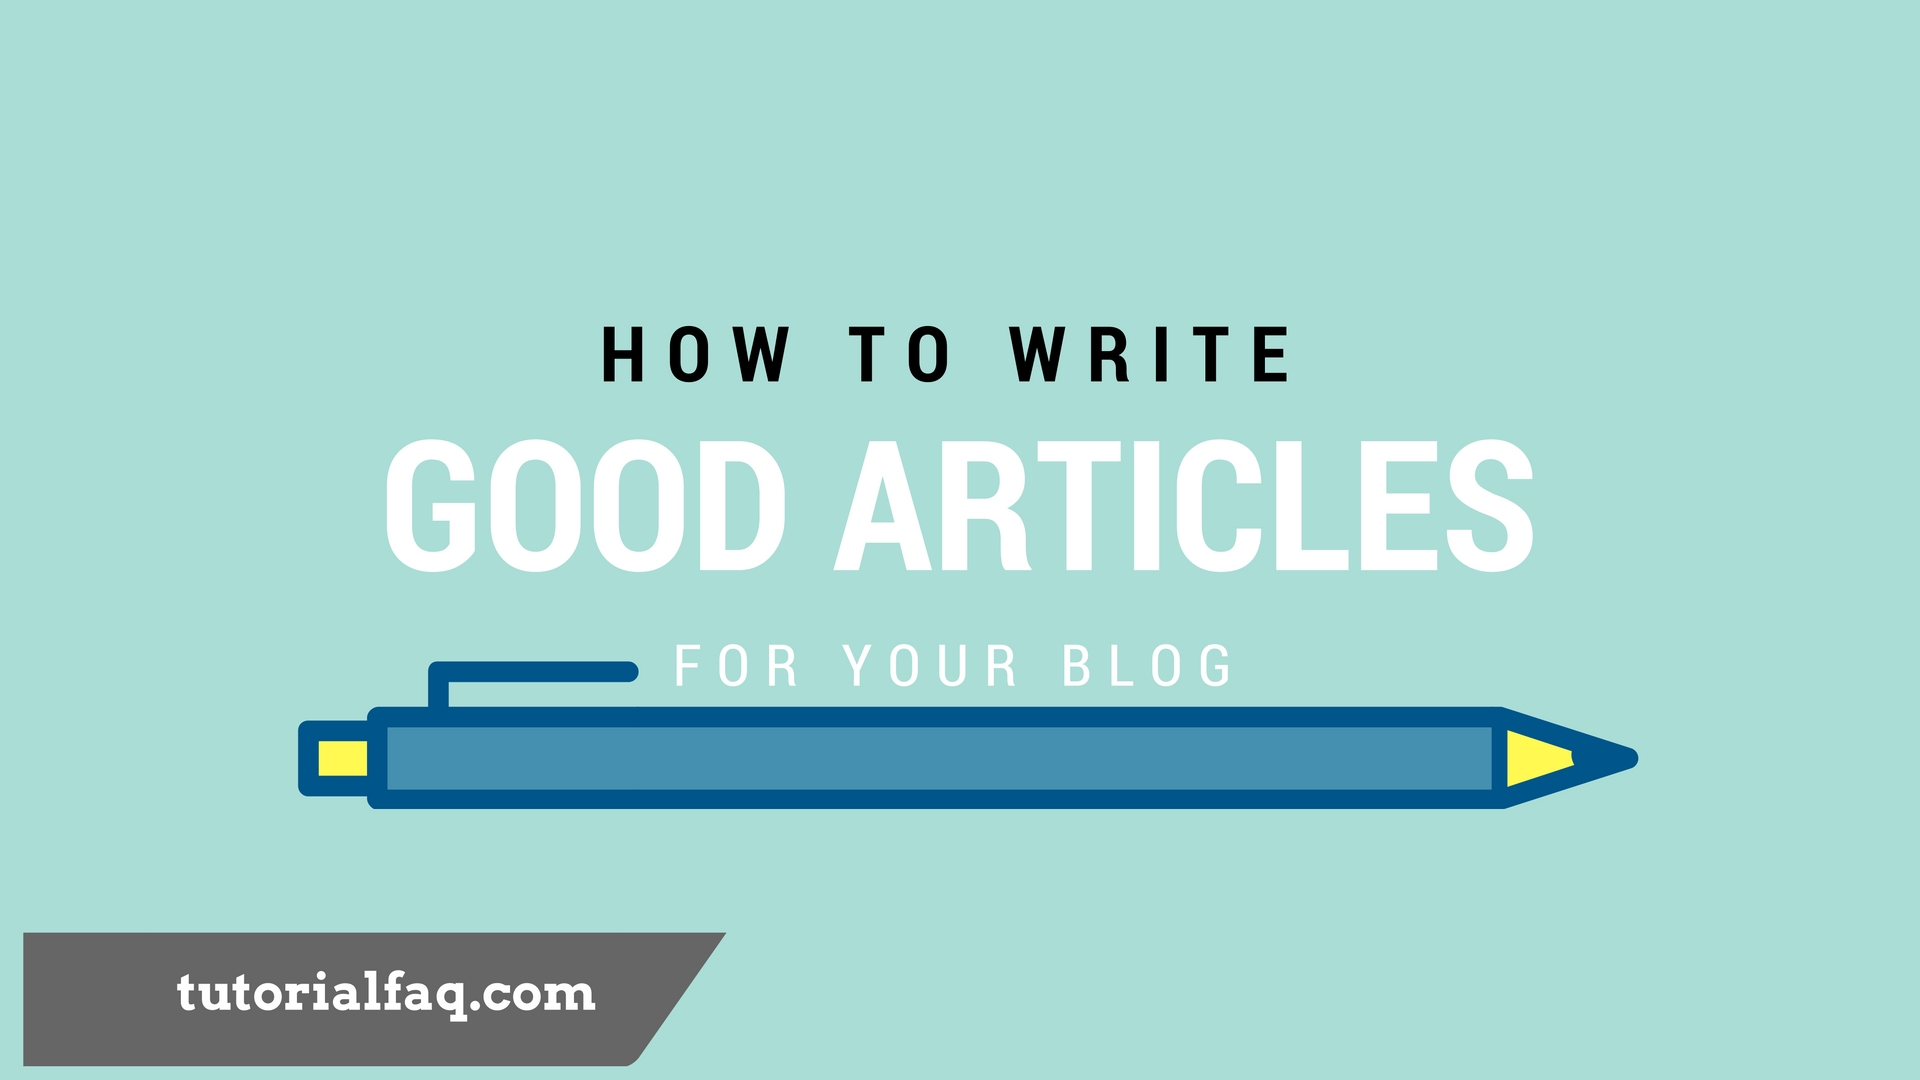 5 essential tips for writing Good Articles - Tutorial FAQ